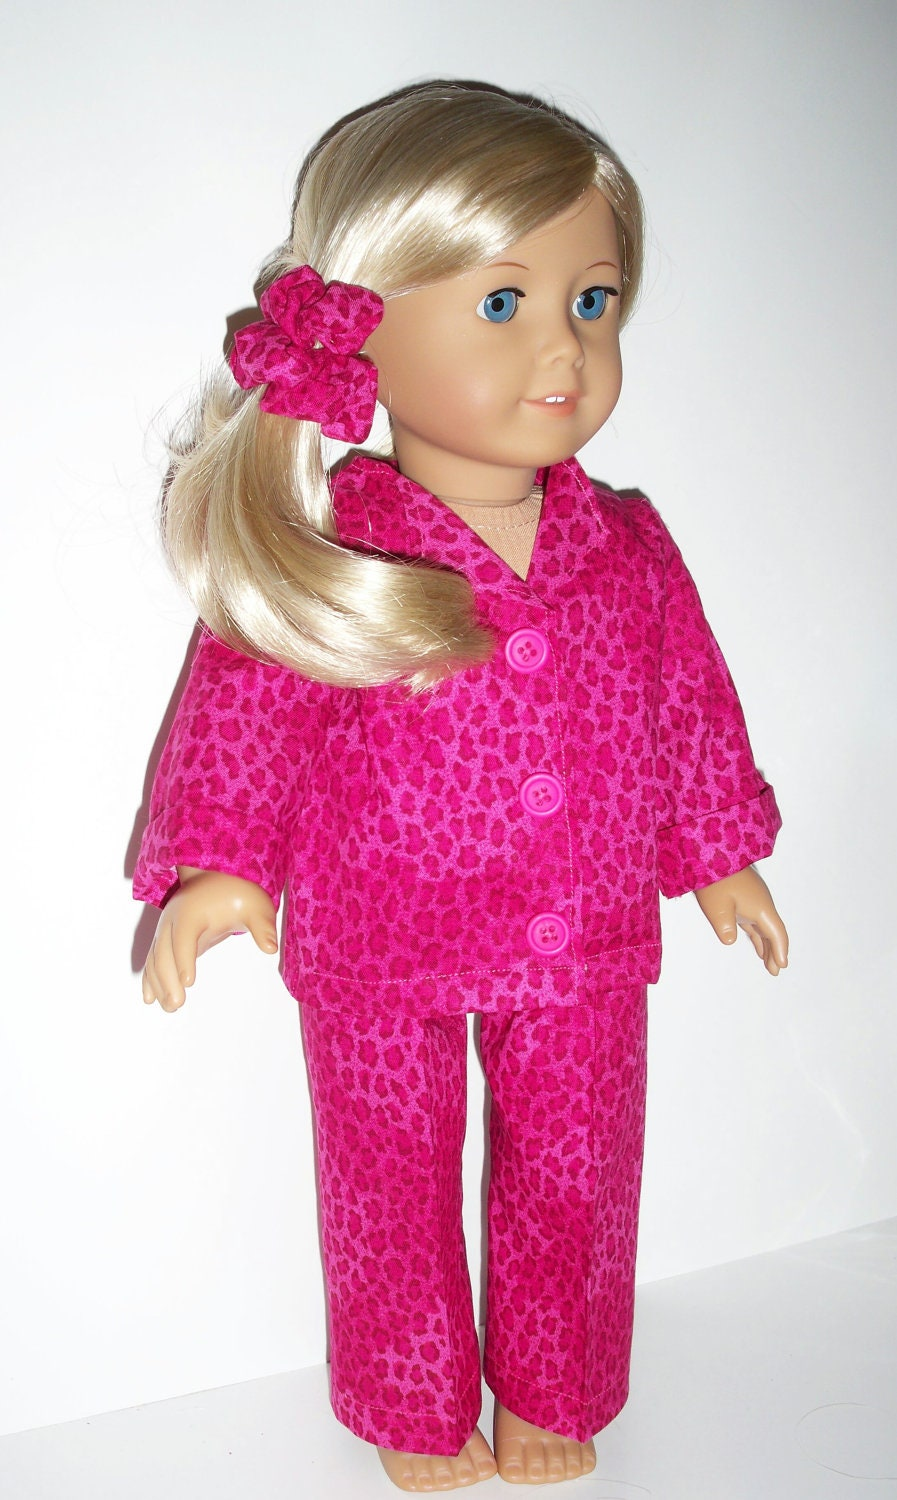 18 Inch Doll Clothes Plaid Pajamas with Teddy Bear | Fits